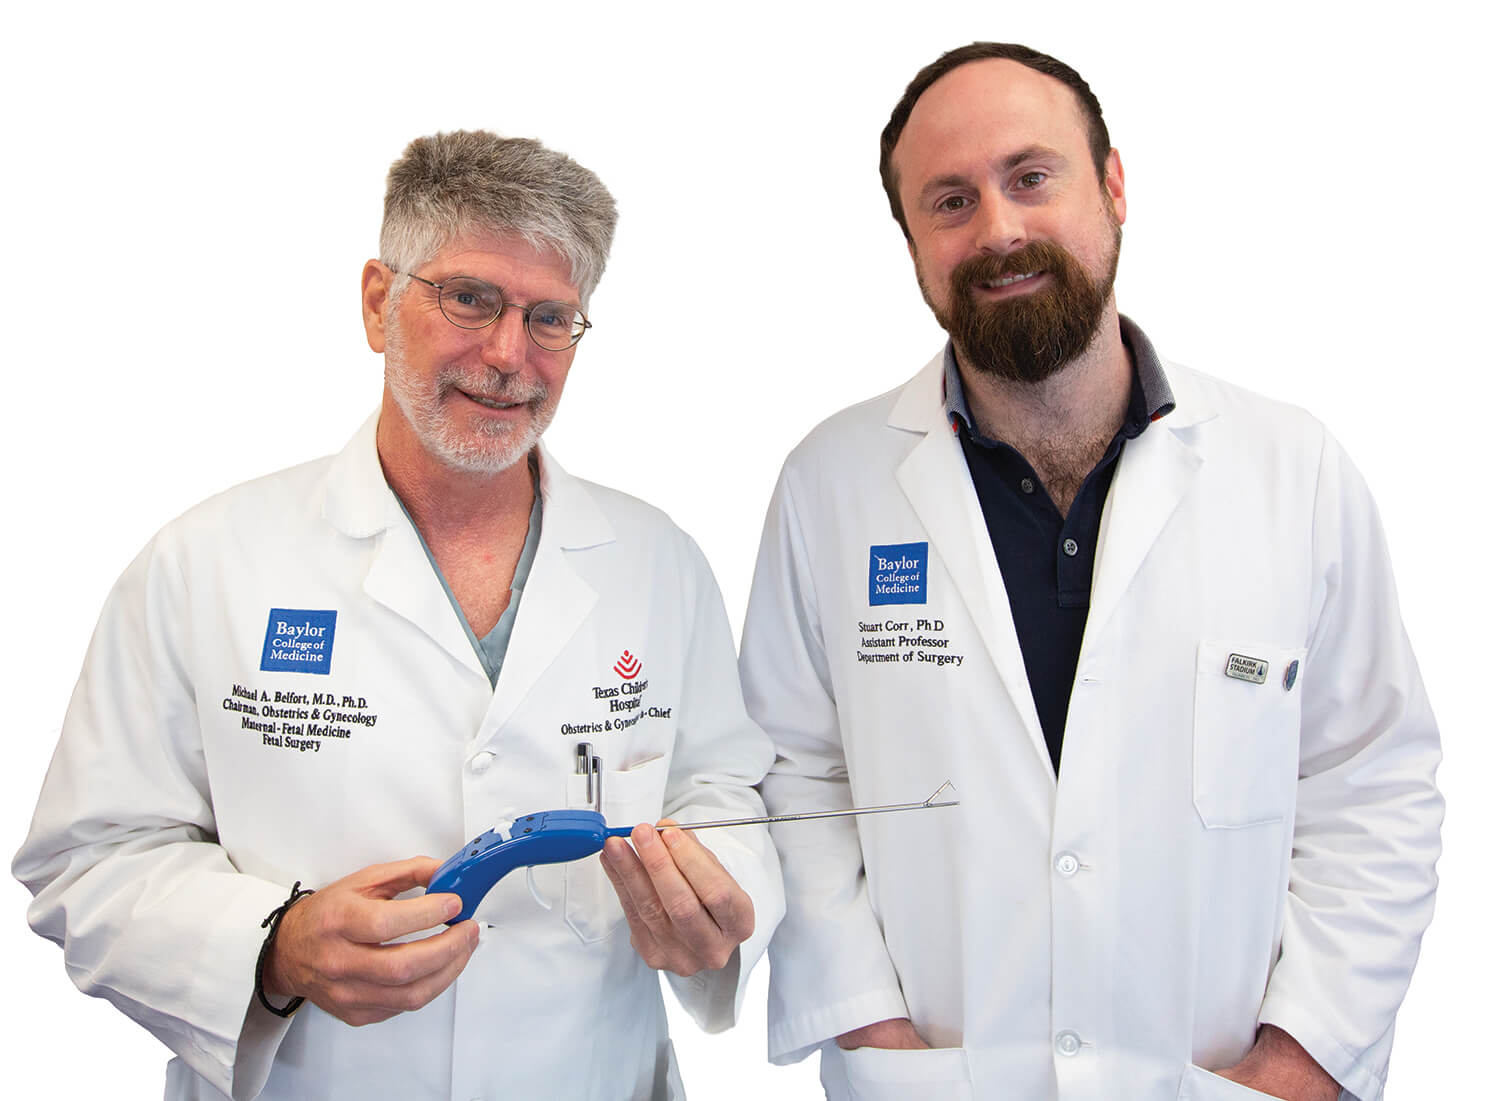 Michael A. Belfort, M.D., and Stuart J. Corr, Ph.D., collaborated to create TinyStitch. Belfort is holding the device.